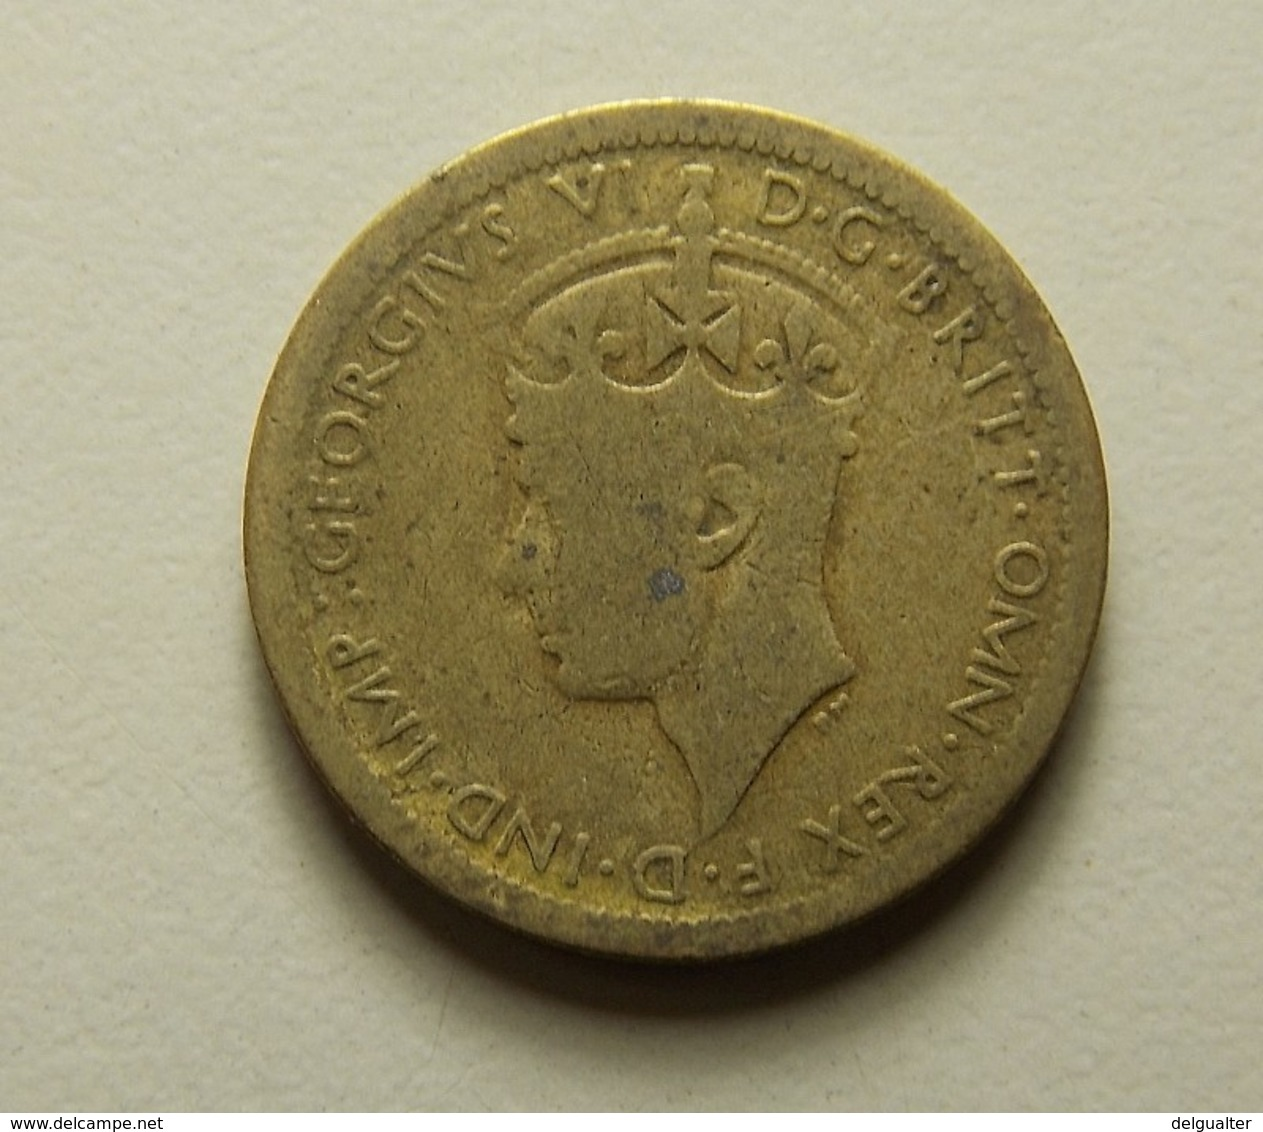 British West Africa 6 Pence 1940 - Monnaies